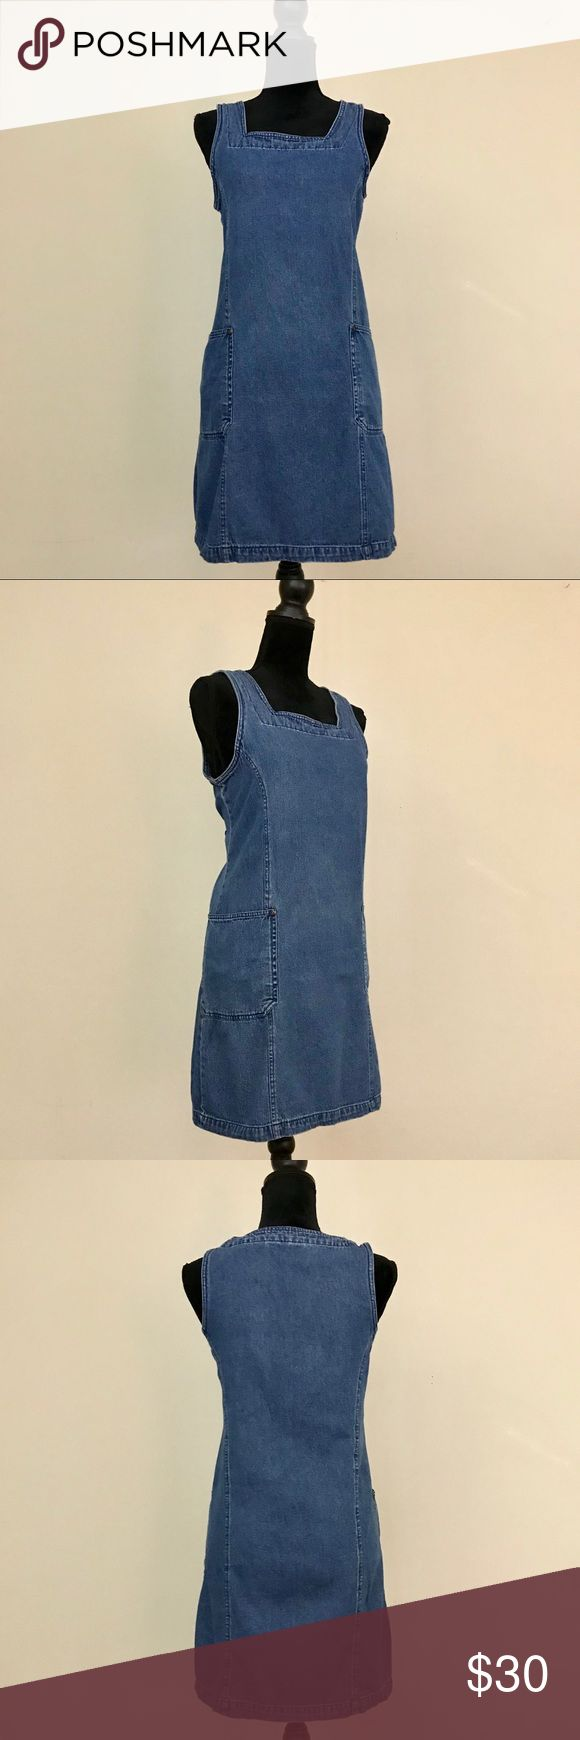 Vintage 1990s Route66 Blue Denim Tank Jumper Dress This sleeveless jumper dress is made of 100% cotton, blue denim material. Features two front pockets. Material provides no stretch. Layer with a shirt as a jumper or wear on its own. In excellent vintage condition without any major flaws. Please see last image for measurements to ensure a proper fit. Vintage Dresses Mini